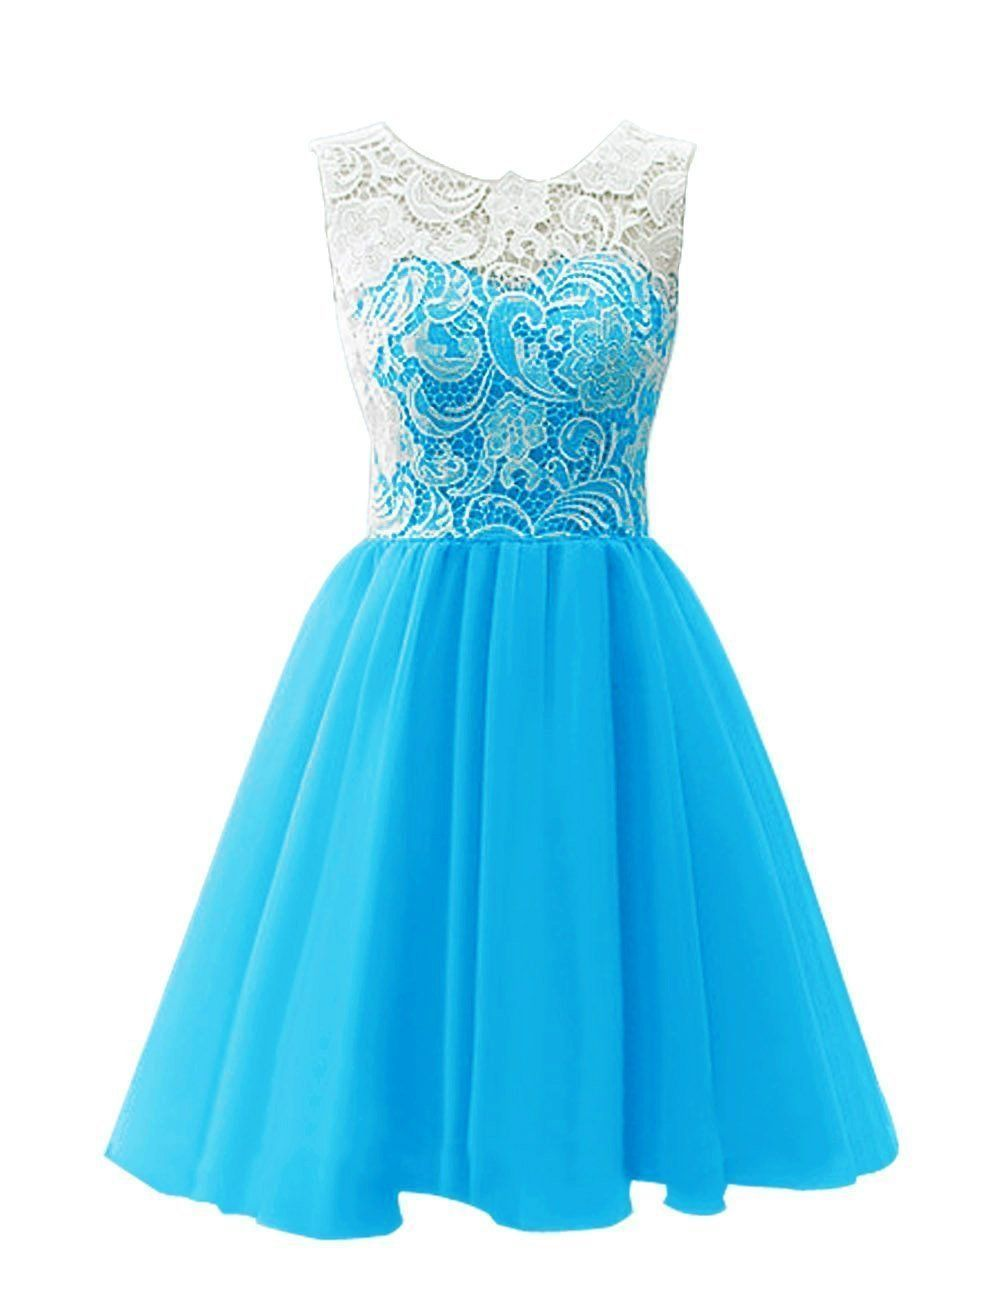 Prom Dresses For 13 Year Olds : dresses, Clothing, Girls